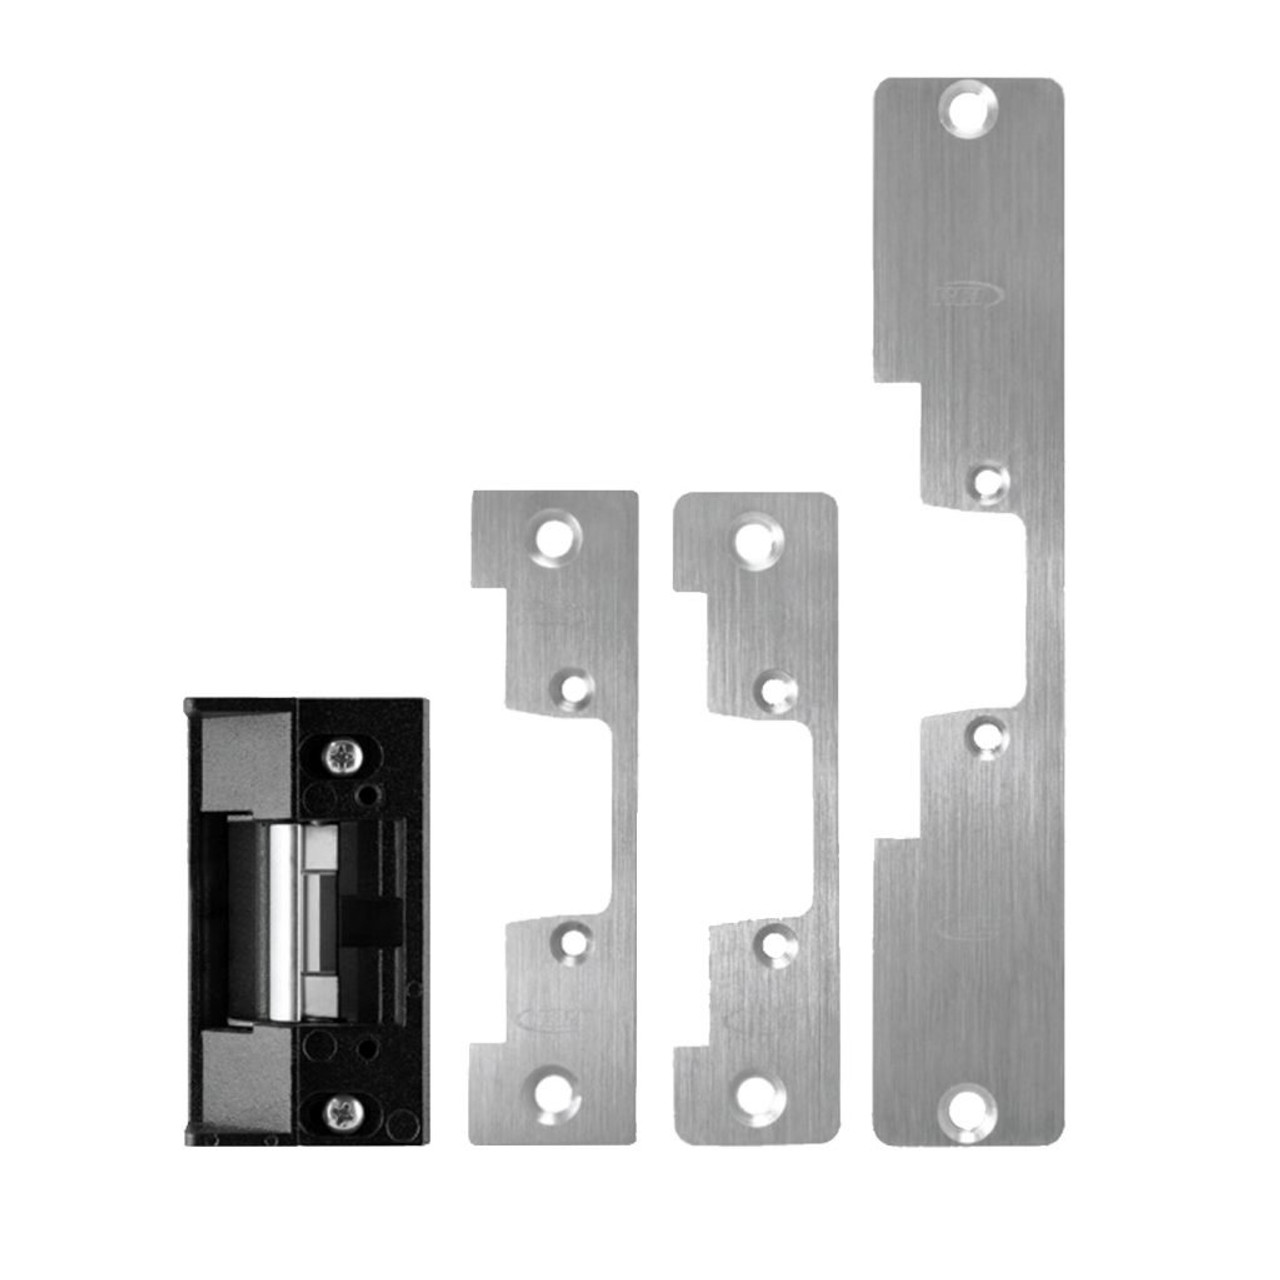 Rci 65u Electromagnetic Door Strike Tremtech Electrical